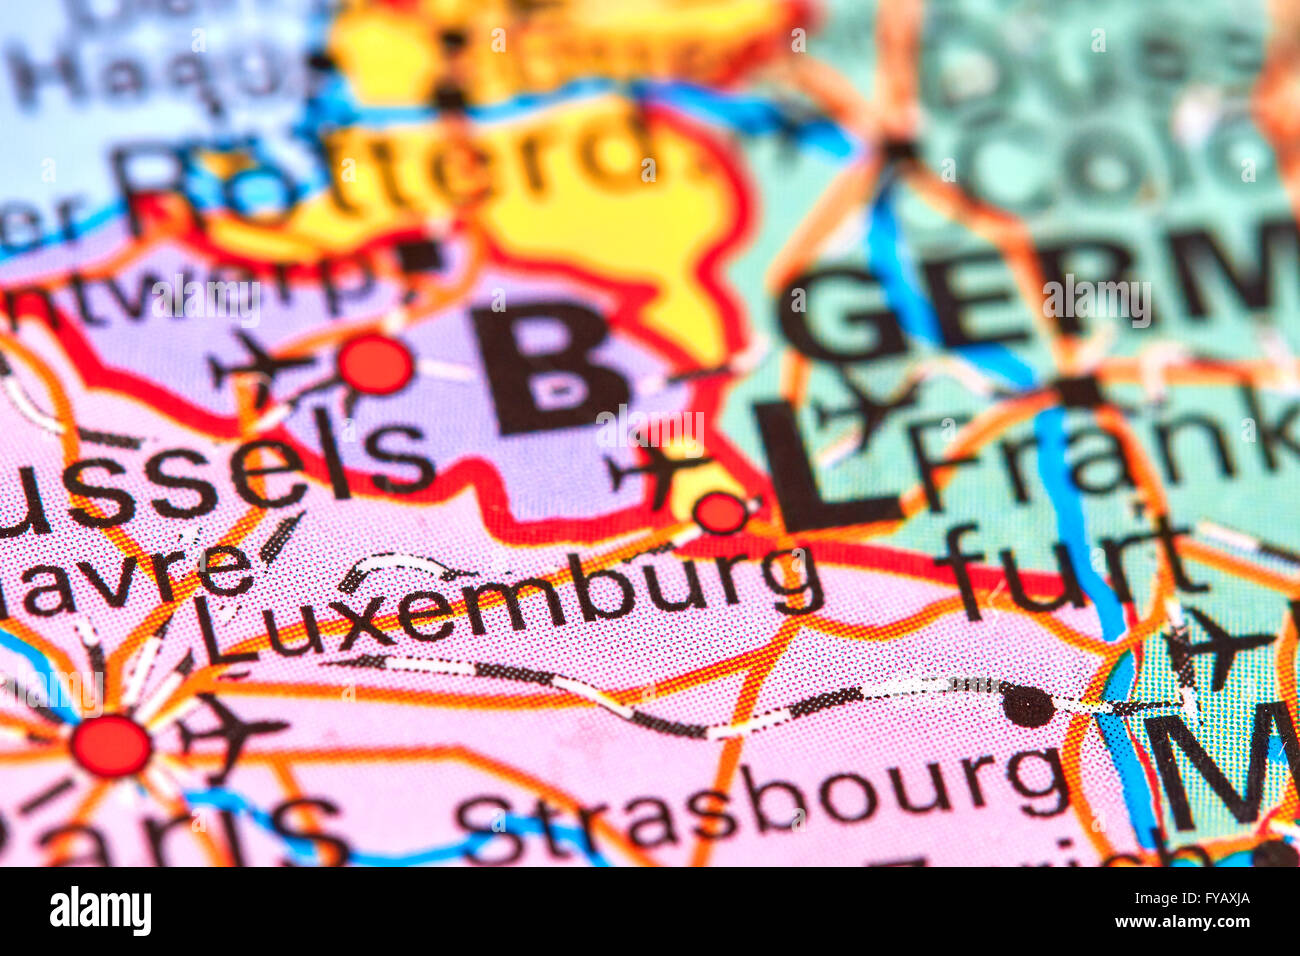 Luxemburg, Country and City in Europe on the World Map - Stock Image